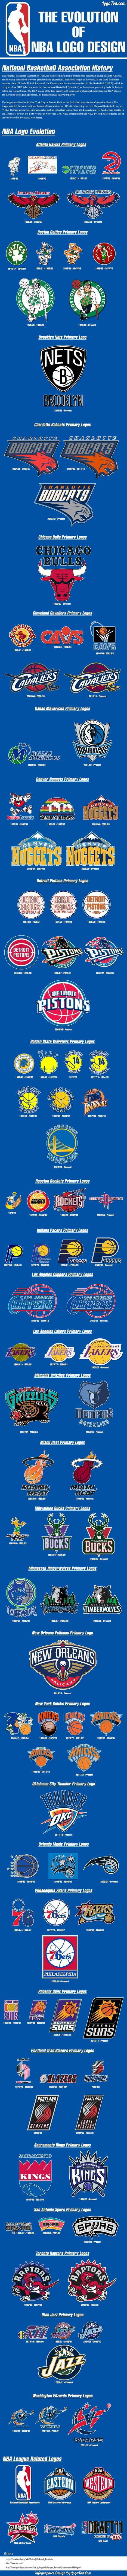 La evolución de los logos en la NBA #infografia #infographic #design #marketing | Seo, Social Media Marketing | Scoop.it